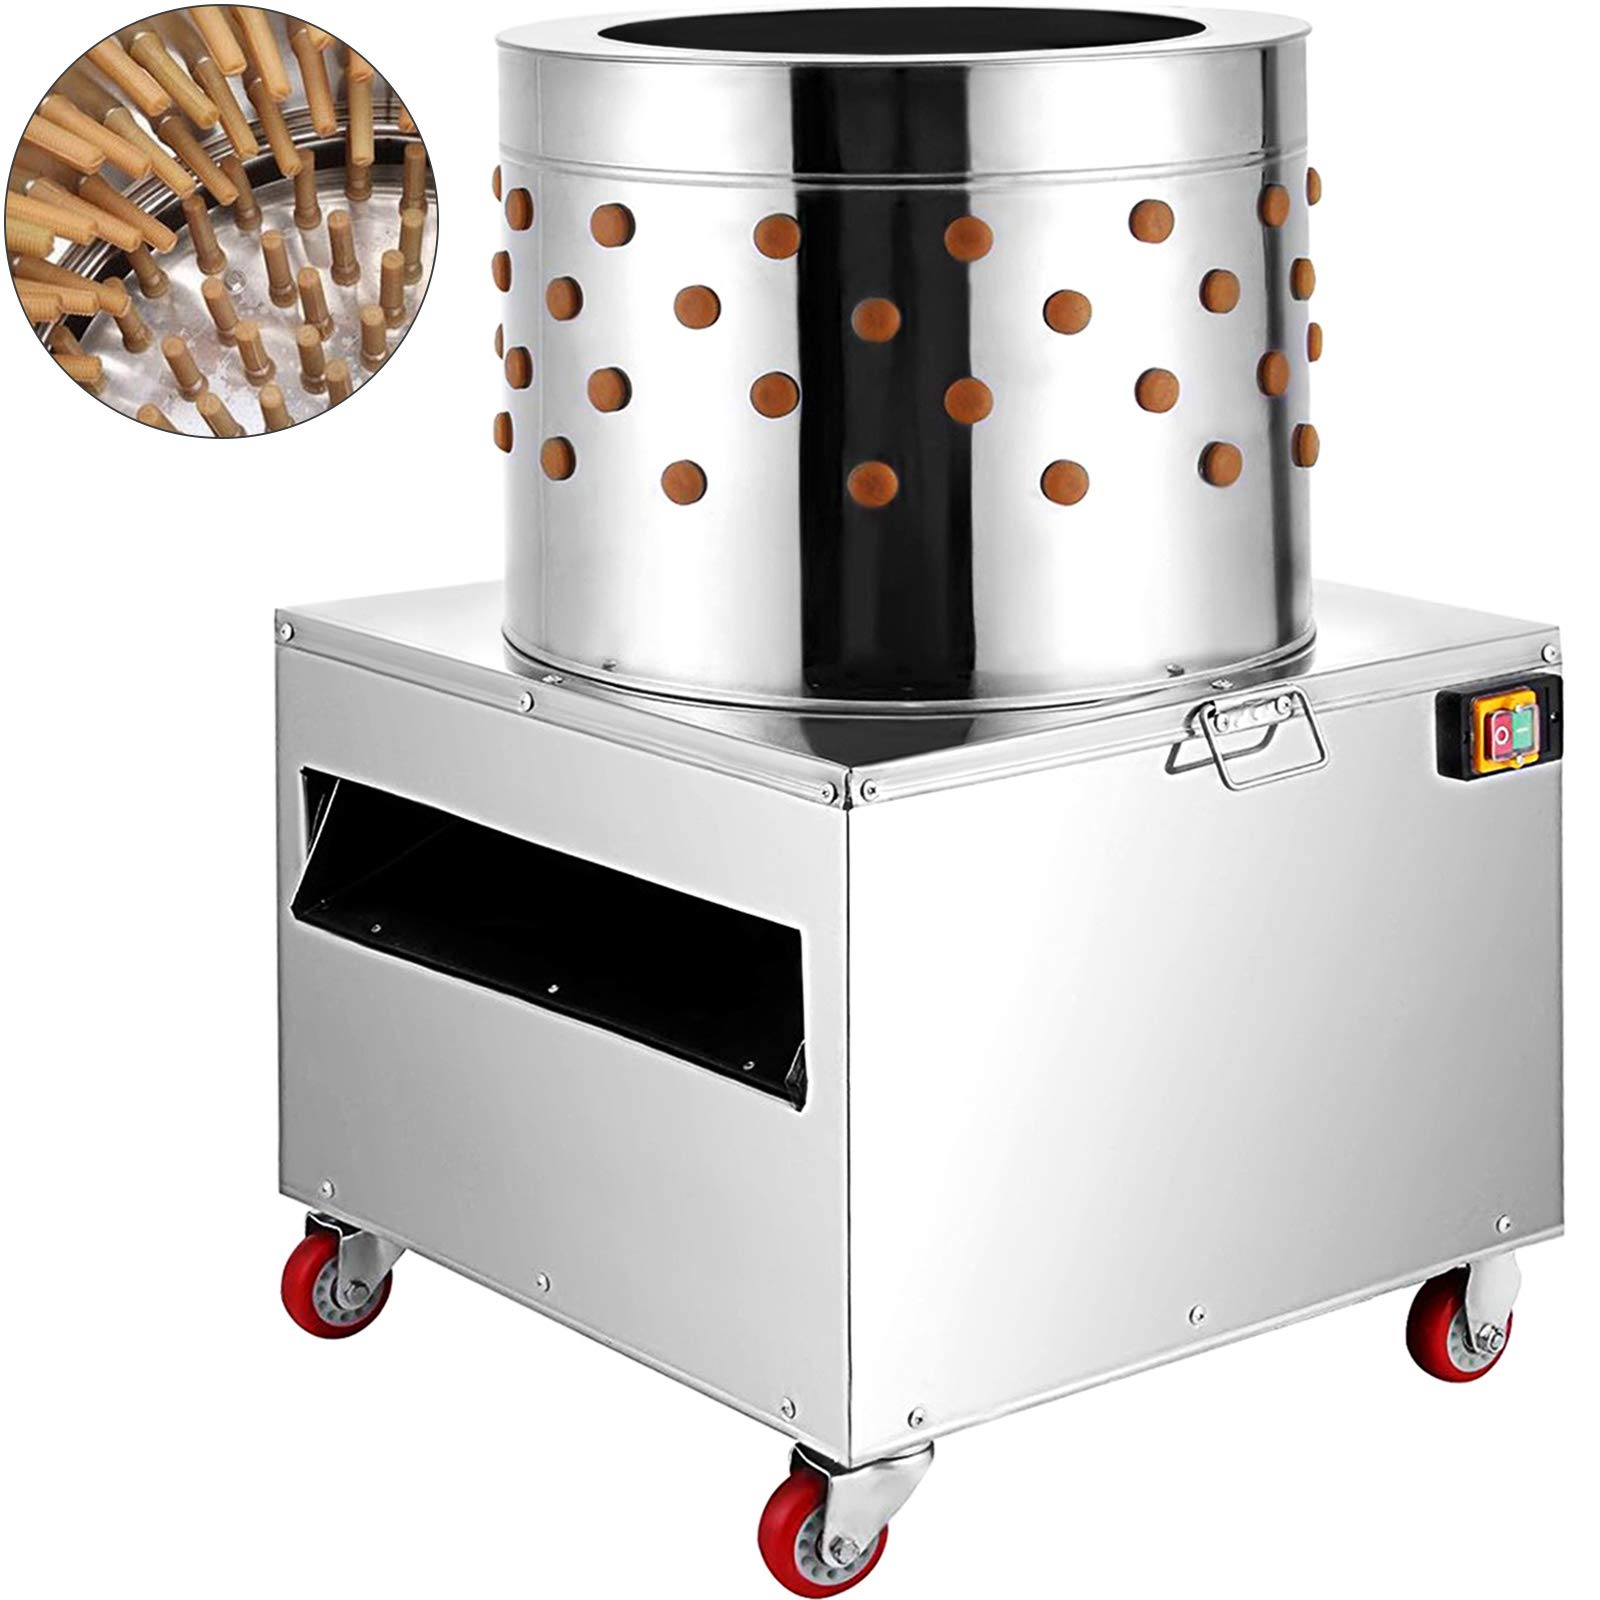 BestEquip Chicken Plucker Machine 1500W Large Pro Poultry Plucker 20Inch Barrel Diameter Feather Removal Quail Plucker for Quail and Chicken (20Inch Barrel Diameter) by BestEquip